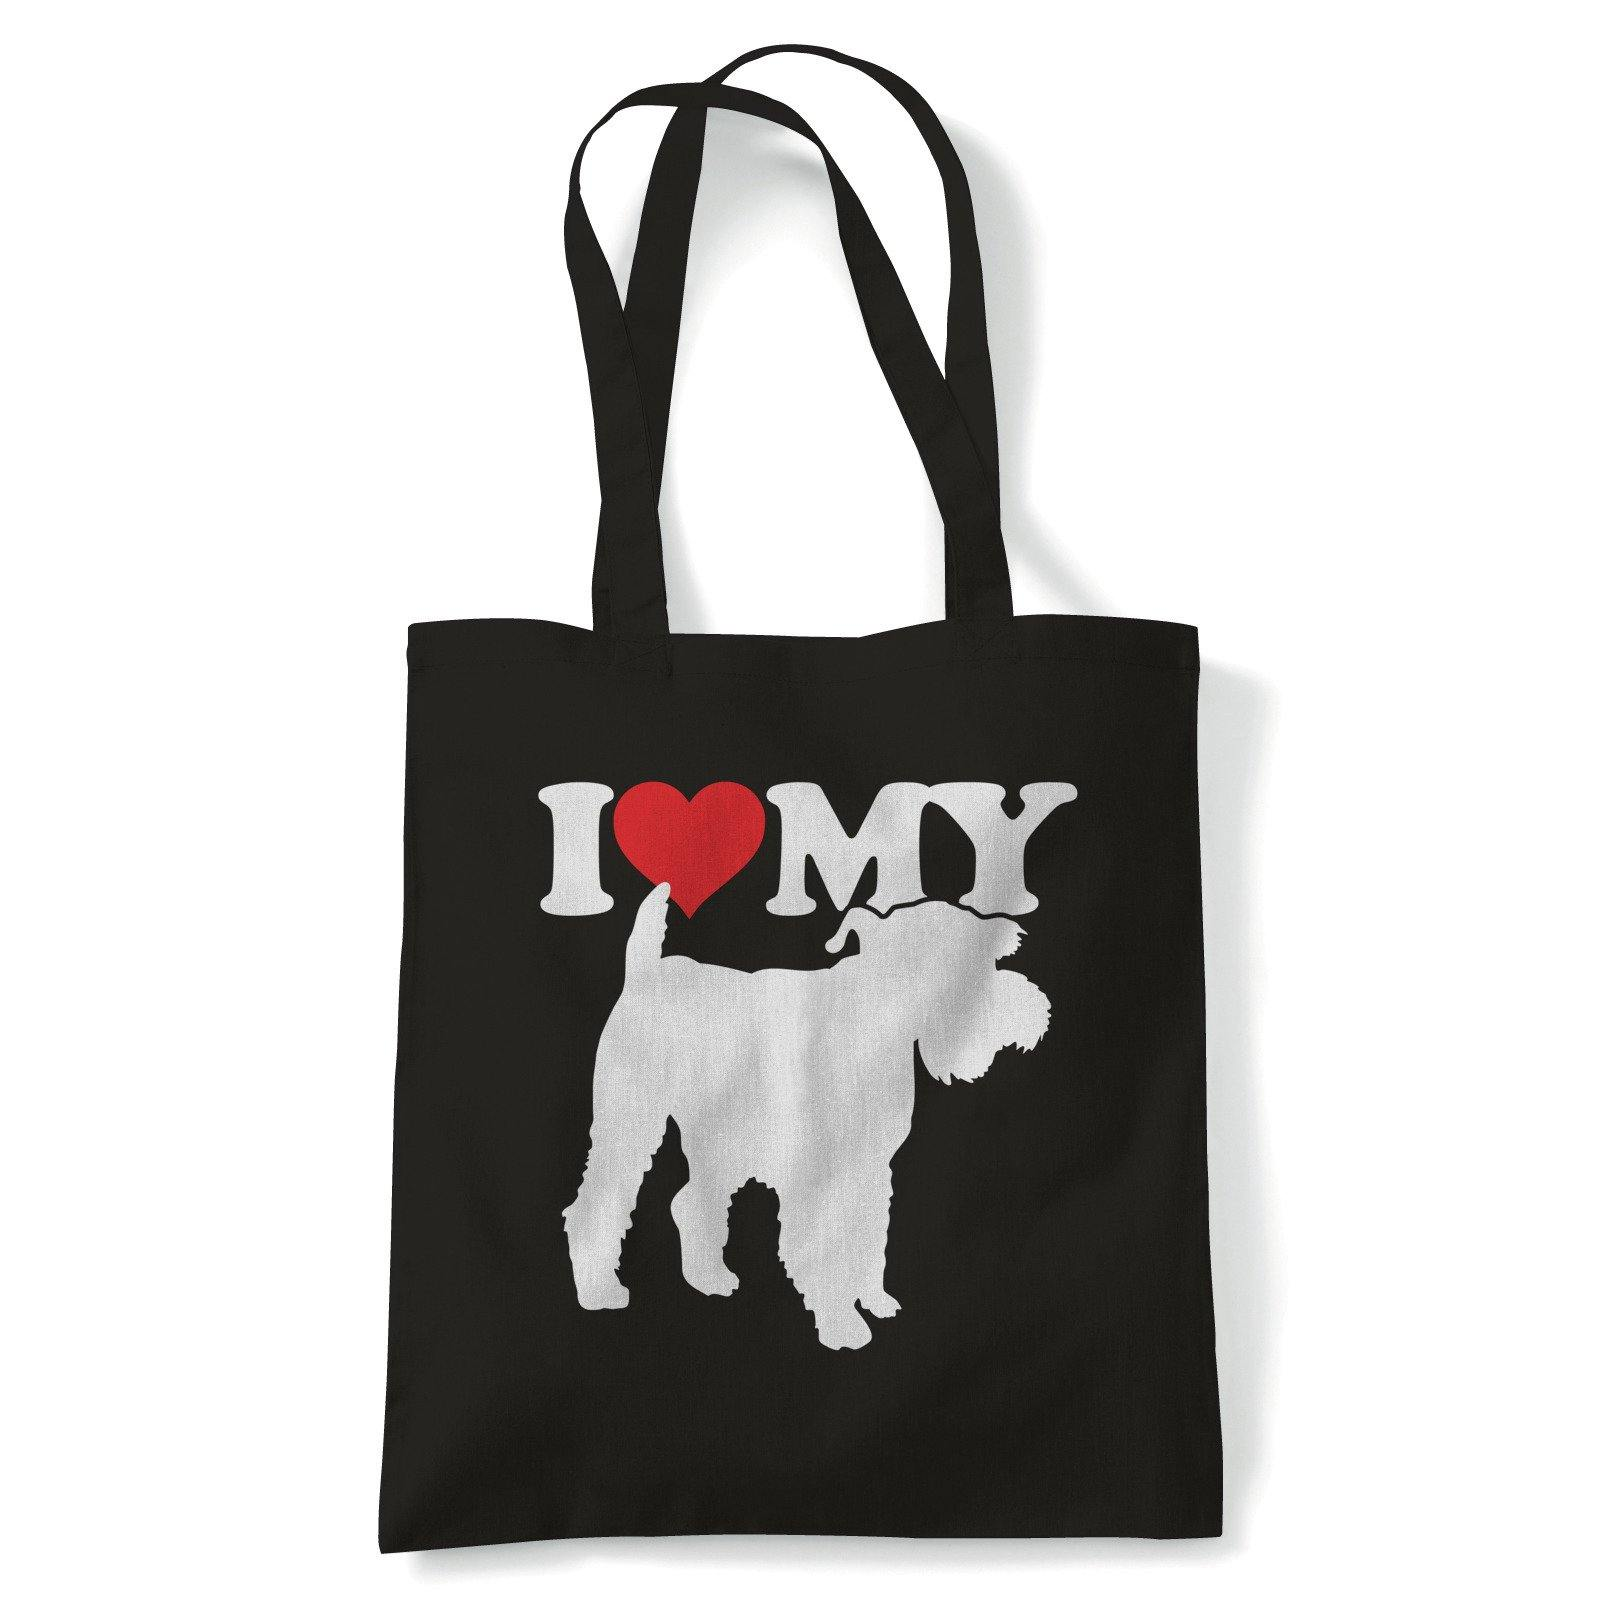 I Love My Miniature Schnauzer Tote | Dog Gift Fur Baby Lover Owner Mans Best Friend | Reusable Shopping Cotton Canvas Long Handled Natural Shopper Eco-Friendly Fashion